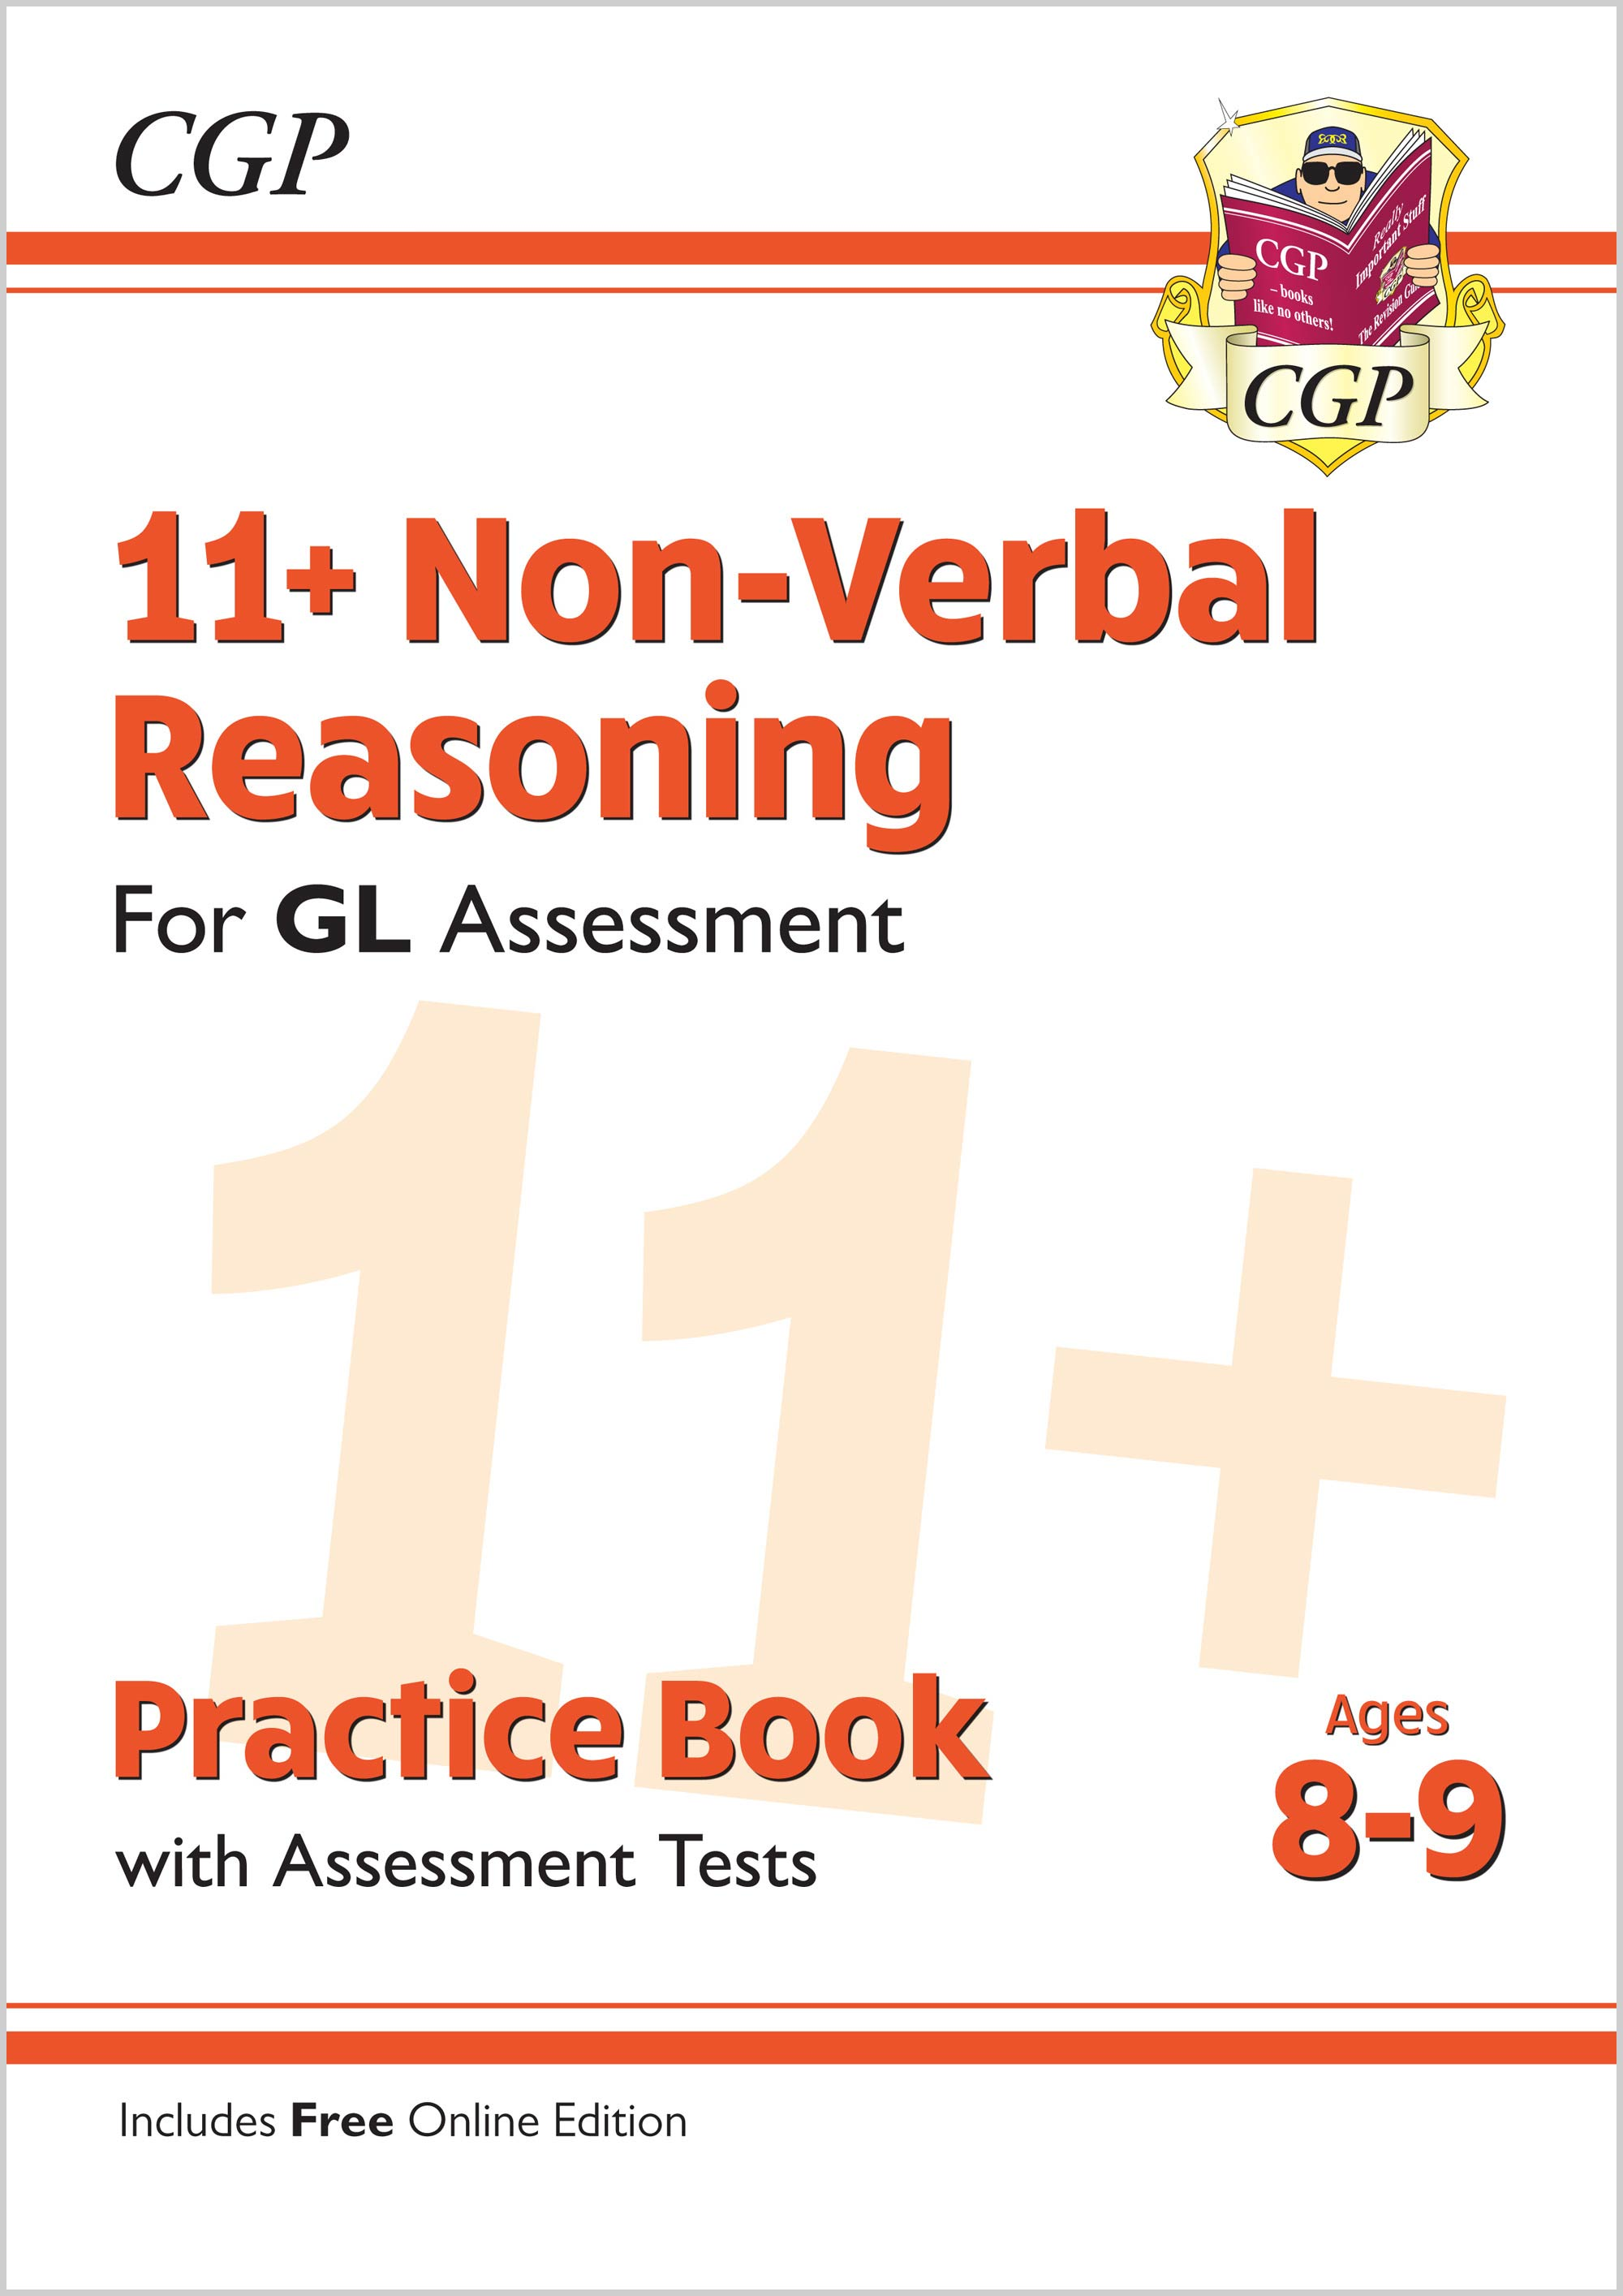 N4QE2 - 11+ GL Non-Verbal Reasoning Practice Book & Assessment Tests - Ages 8-9 (with Online Edition